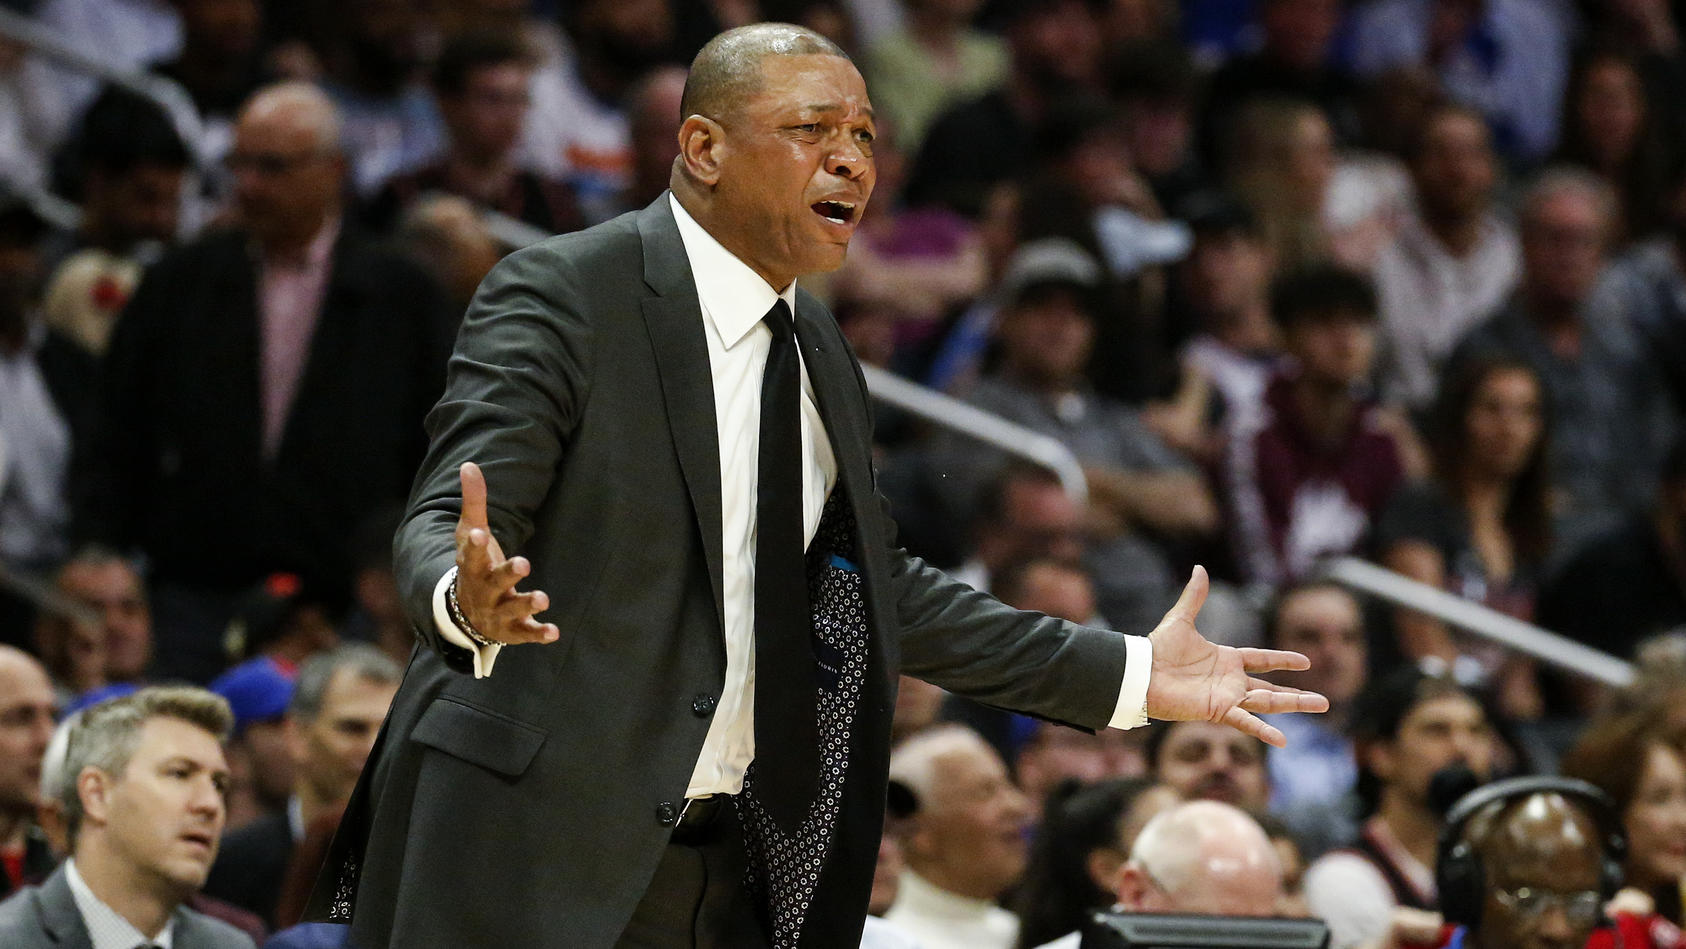 November 11, 2019, Los Angeles, California, U.S: Los Angeles Clippers head coach Doc Rivers reacts to a call during an